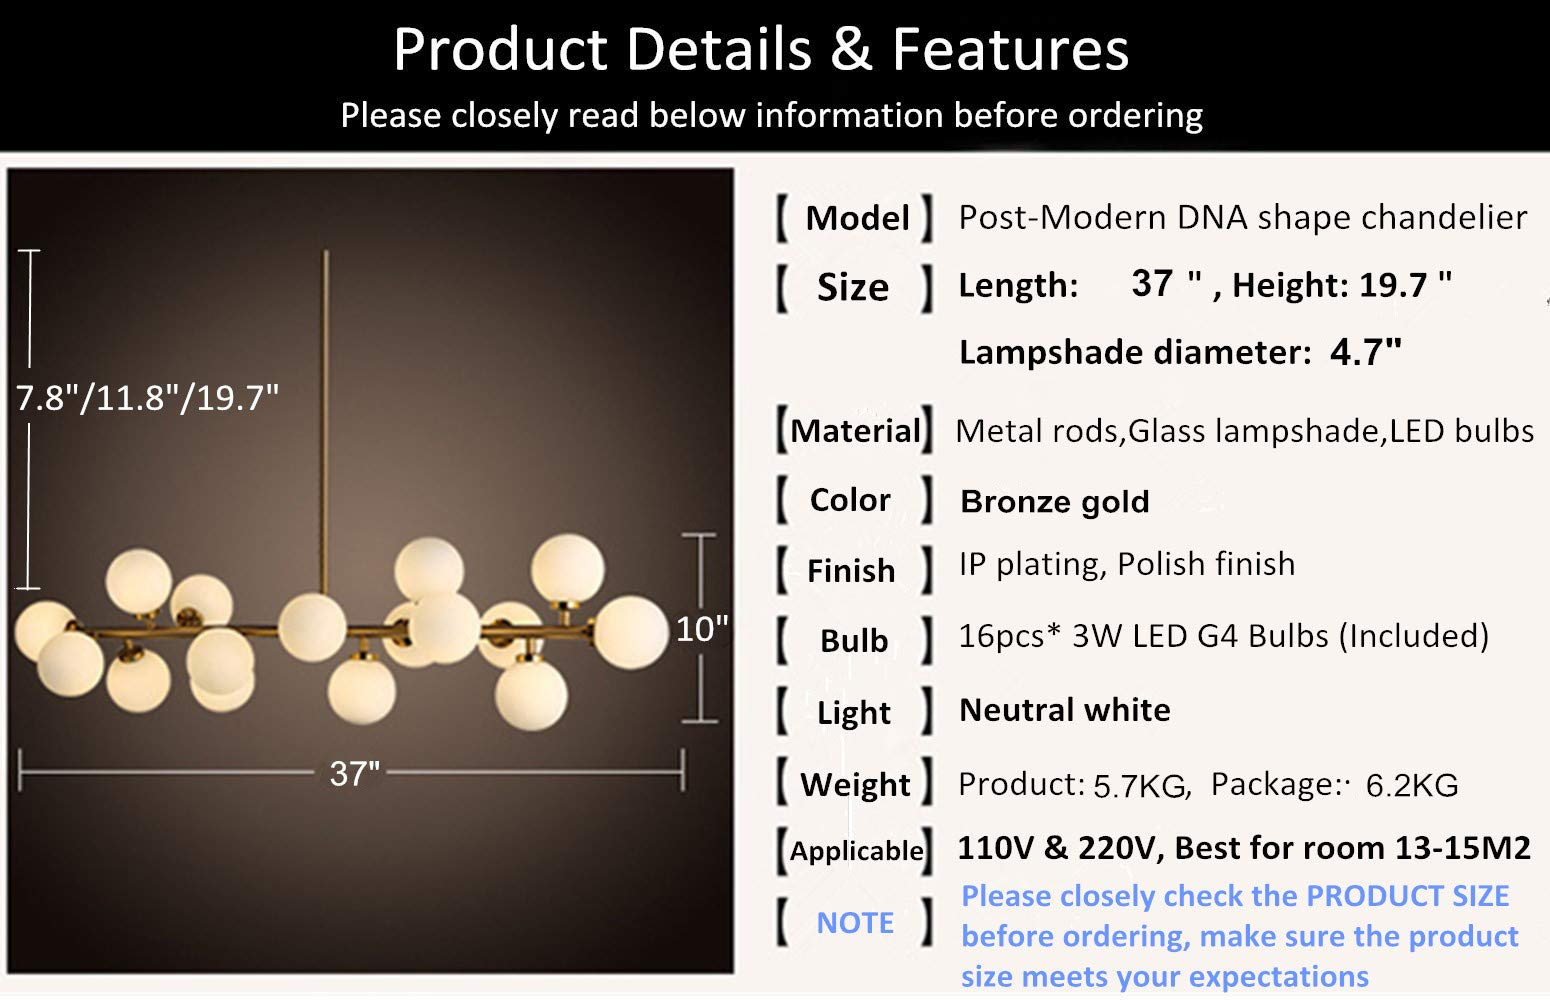 Fandian Post-Modern Chandelier 16 Round Glasses LED Ceiling Light Pendant, DNA Shape with G4 LED Bulbs (Bronze Gold (4.7'' Lampshade)) by Fandian (Image #3)